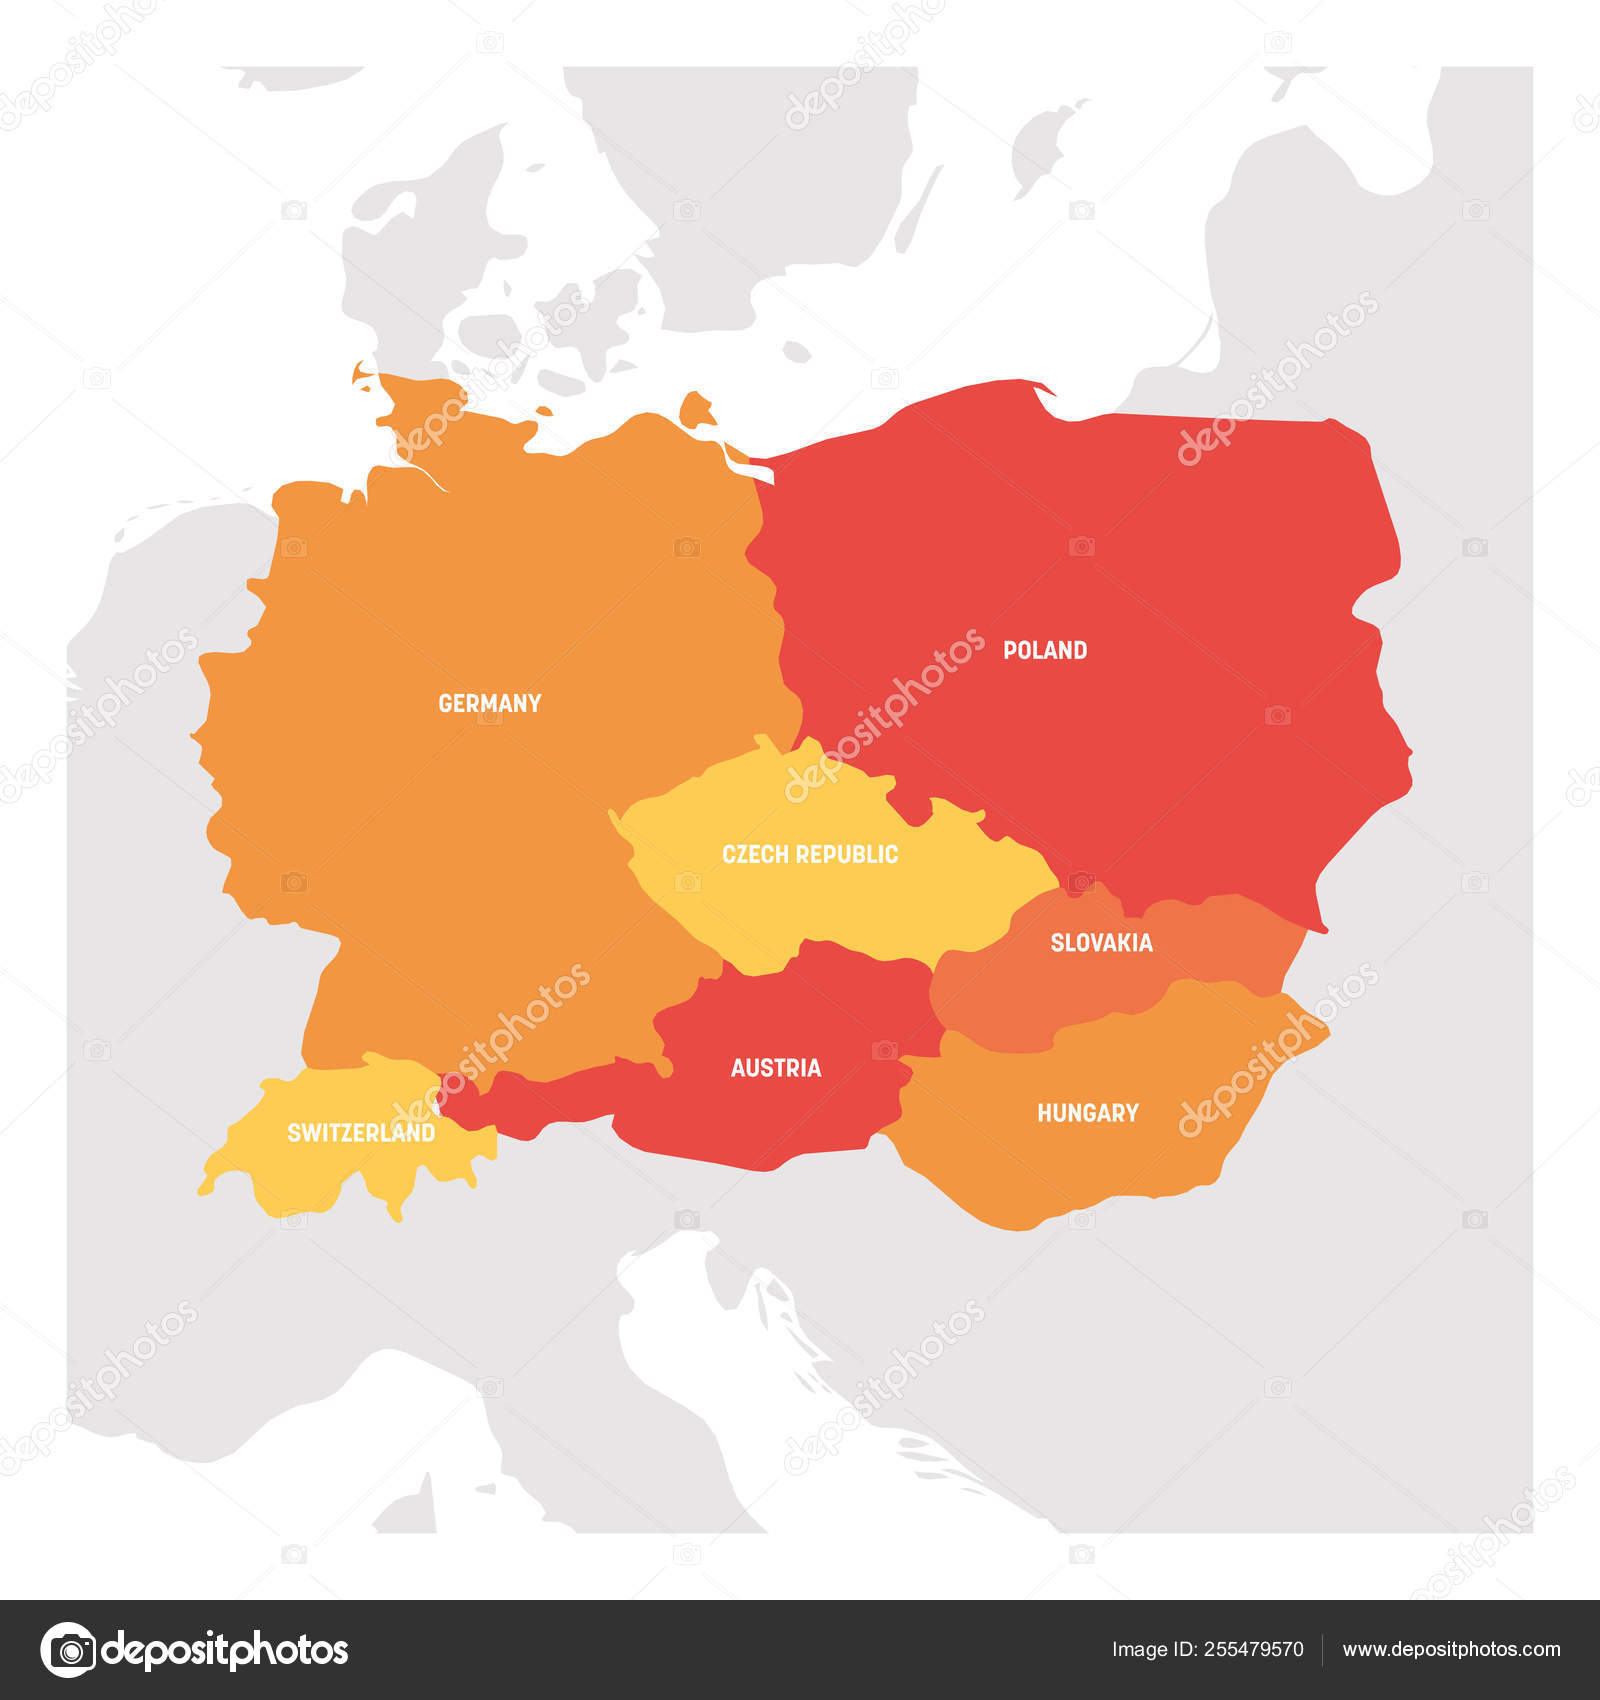 Mapa De Europa Central.Central Europe Region Map Of Countries In Central Part Of